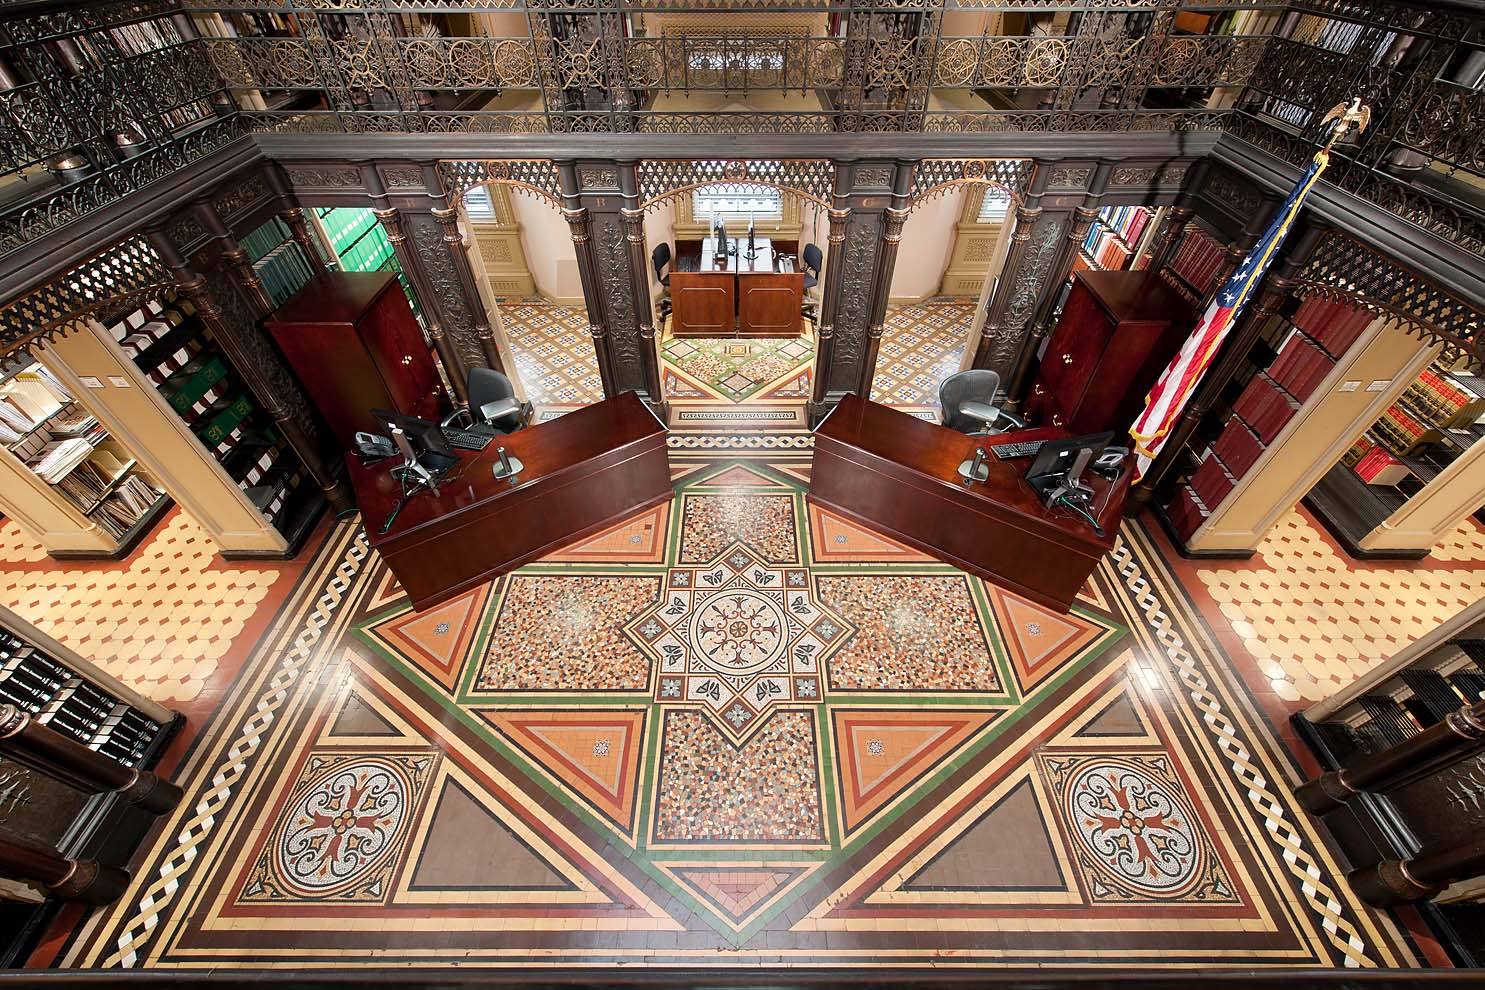 looking down to patterned tile floor and cast iron ornamental railings